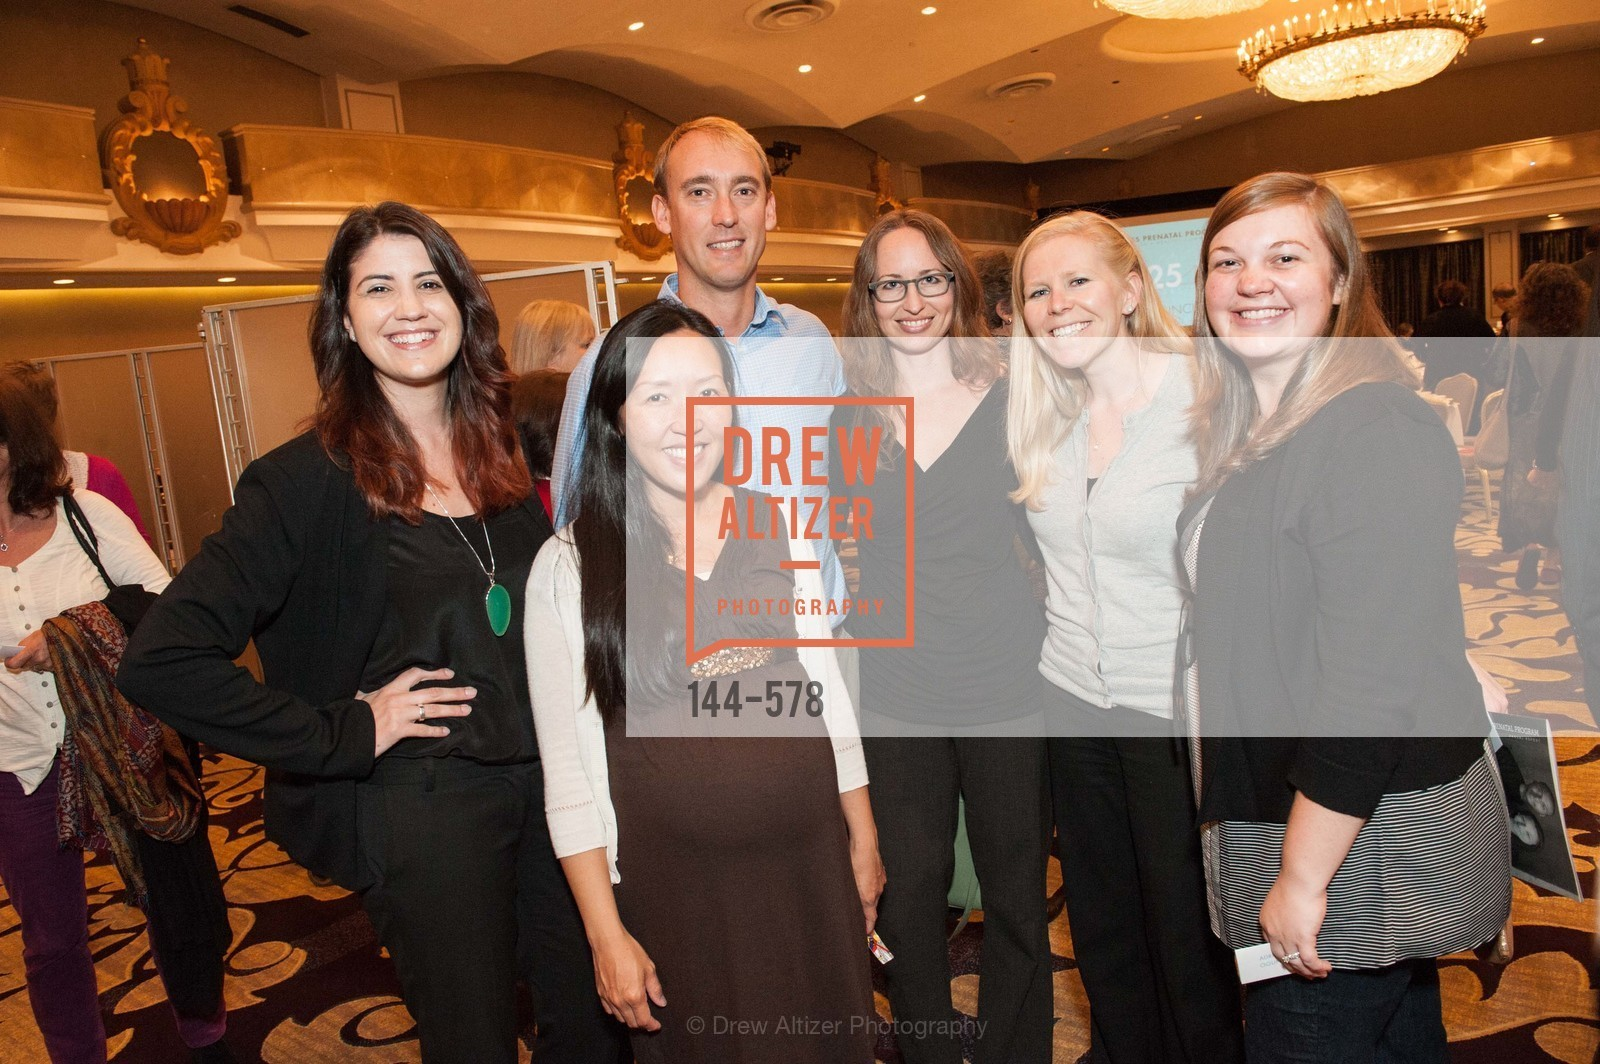 Kate Powers, Helen Shin, Seth Israel, Melisa Mitchell, Stephanie Perry, Adrienne Ogunebi, HOMELESS PRENATAL Annual Luncheon 2014, US, September 30th, 2014,Drew Altizer, Drew Altizer Photography, full-service agency, private events, San Francisco photographer, photographer california